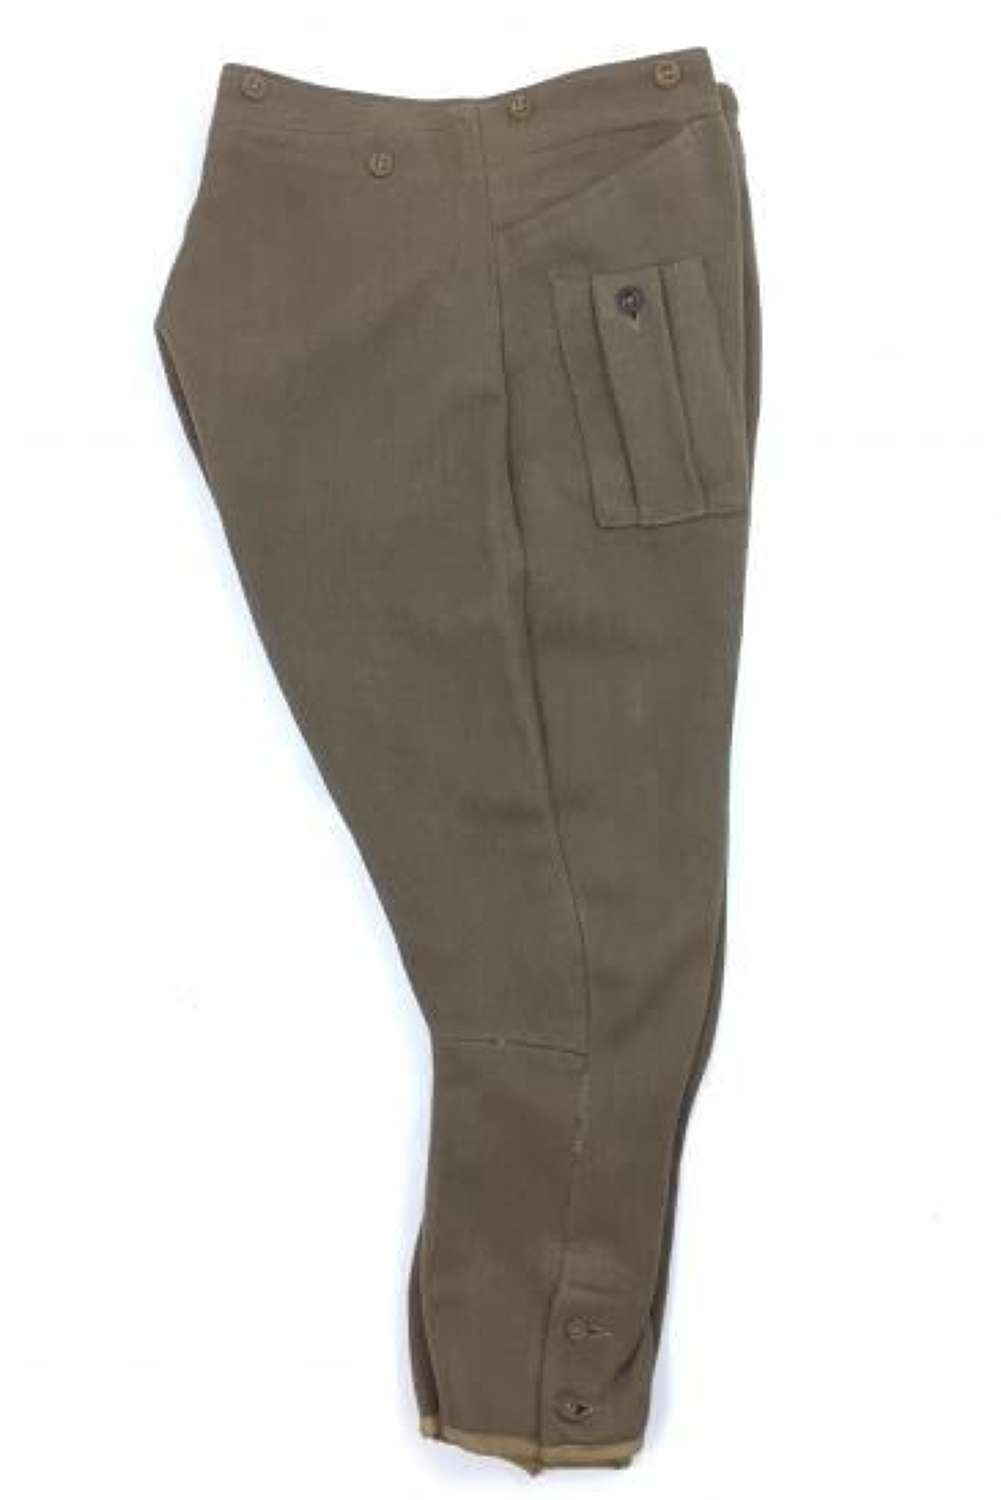 1943 Dated British Army Dispatch Riders Breeches